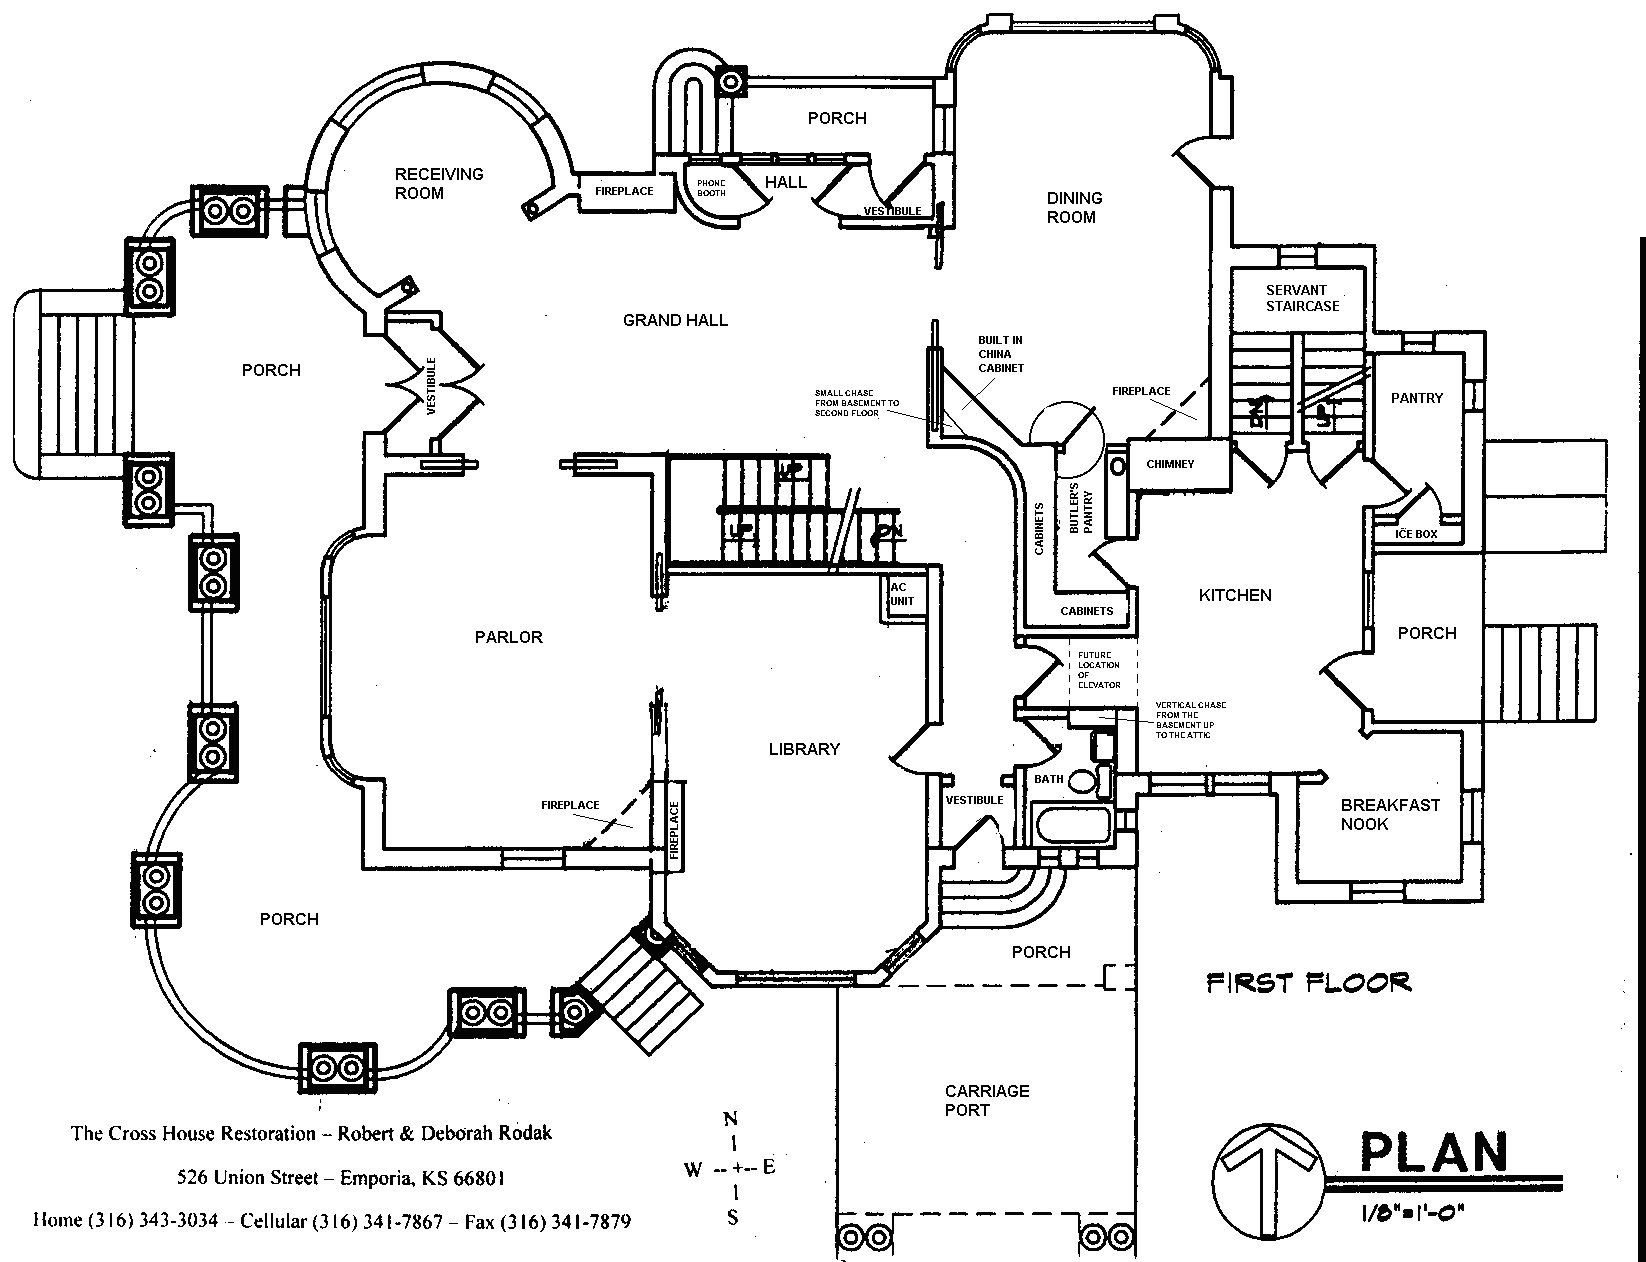 Cross house restoration floor plans and blueprints for House building blueprints